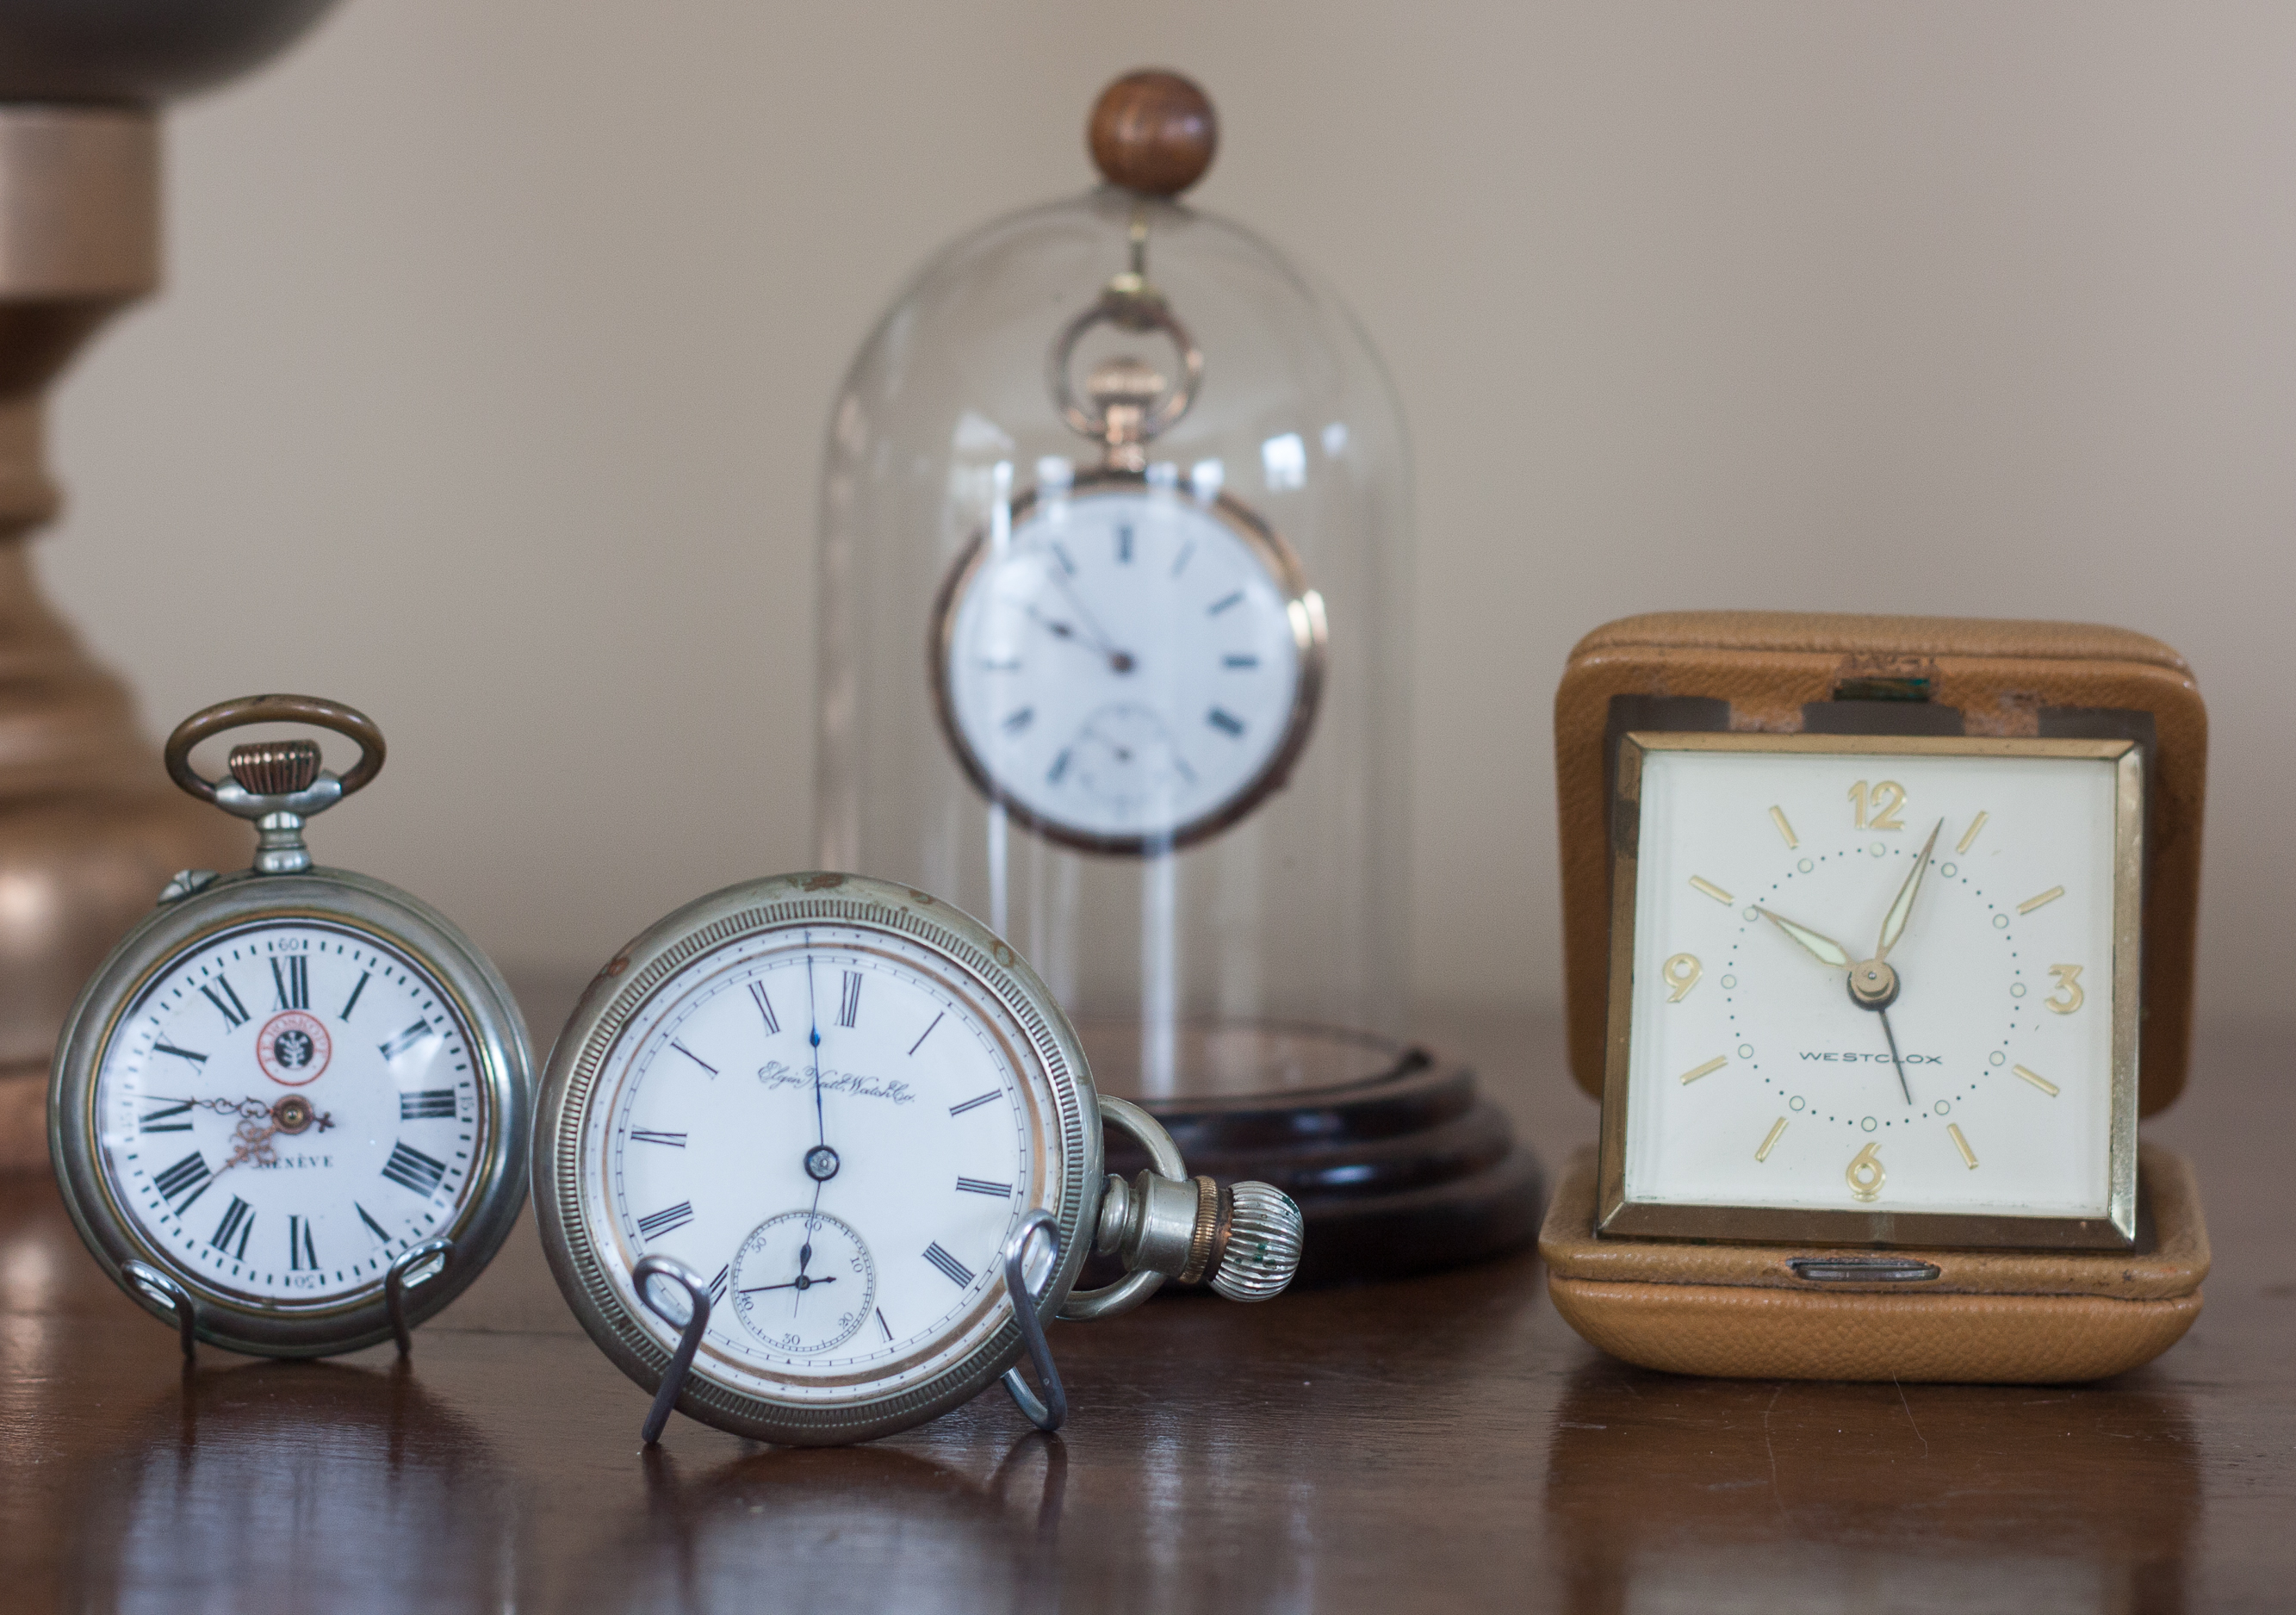 Antique and Vintage Pocket Watches and a Travel Alarm Clock #vintage #vintagepocketwatch #vintageclock